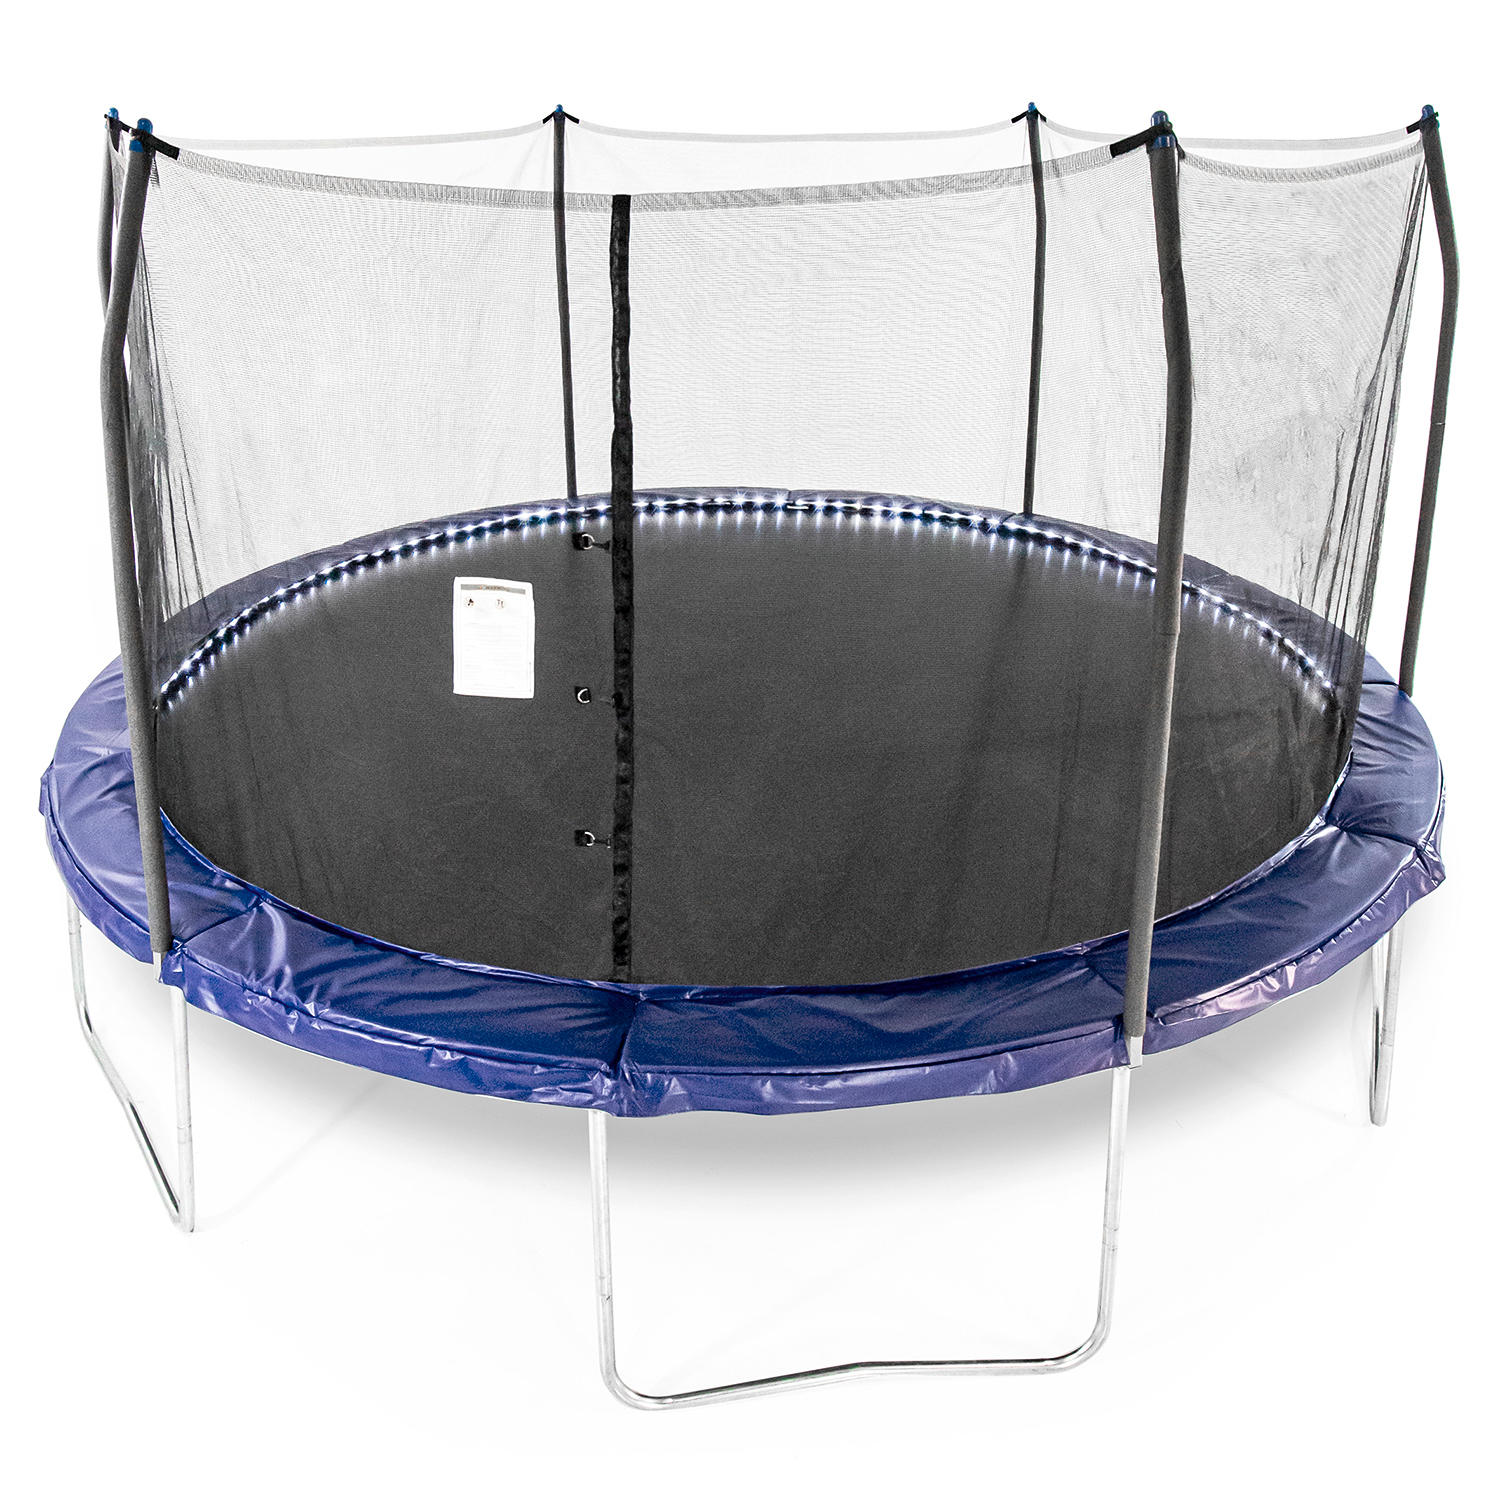 Skywalker Trampolines 15′ Round Trampoline with Lighted Spring Pad